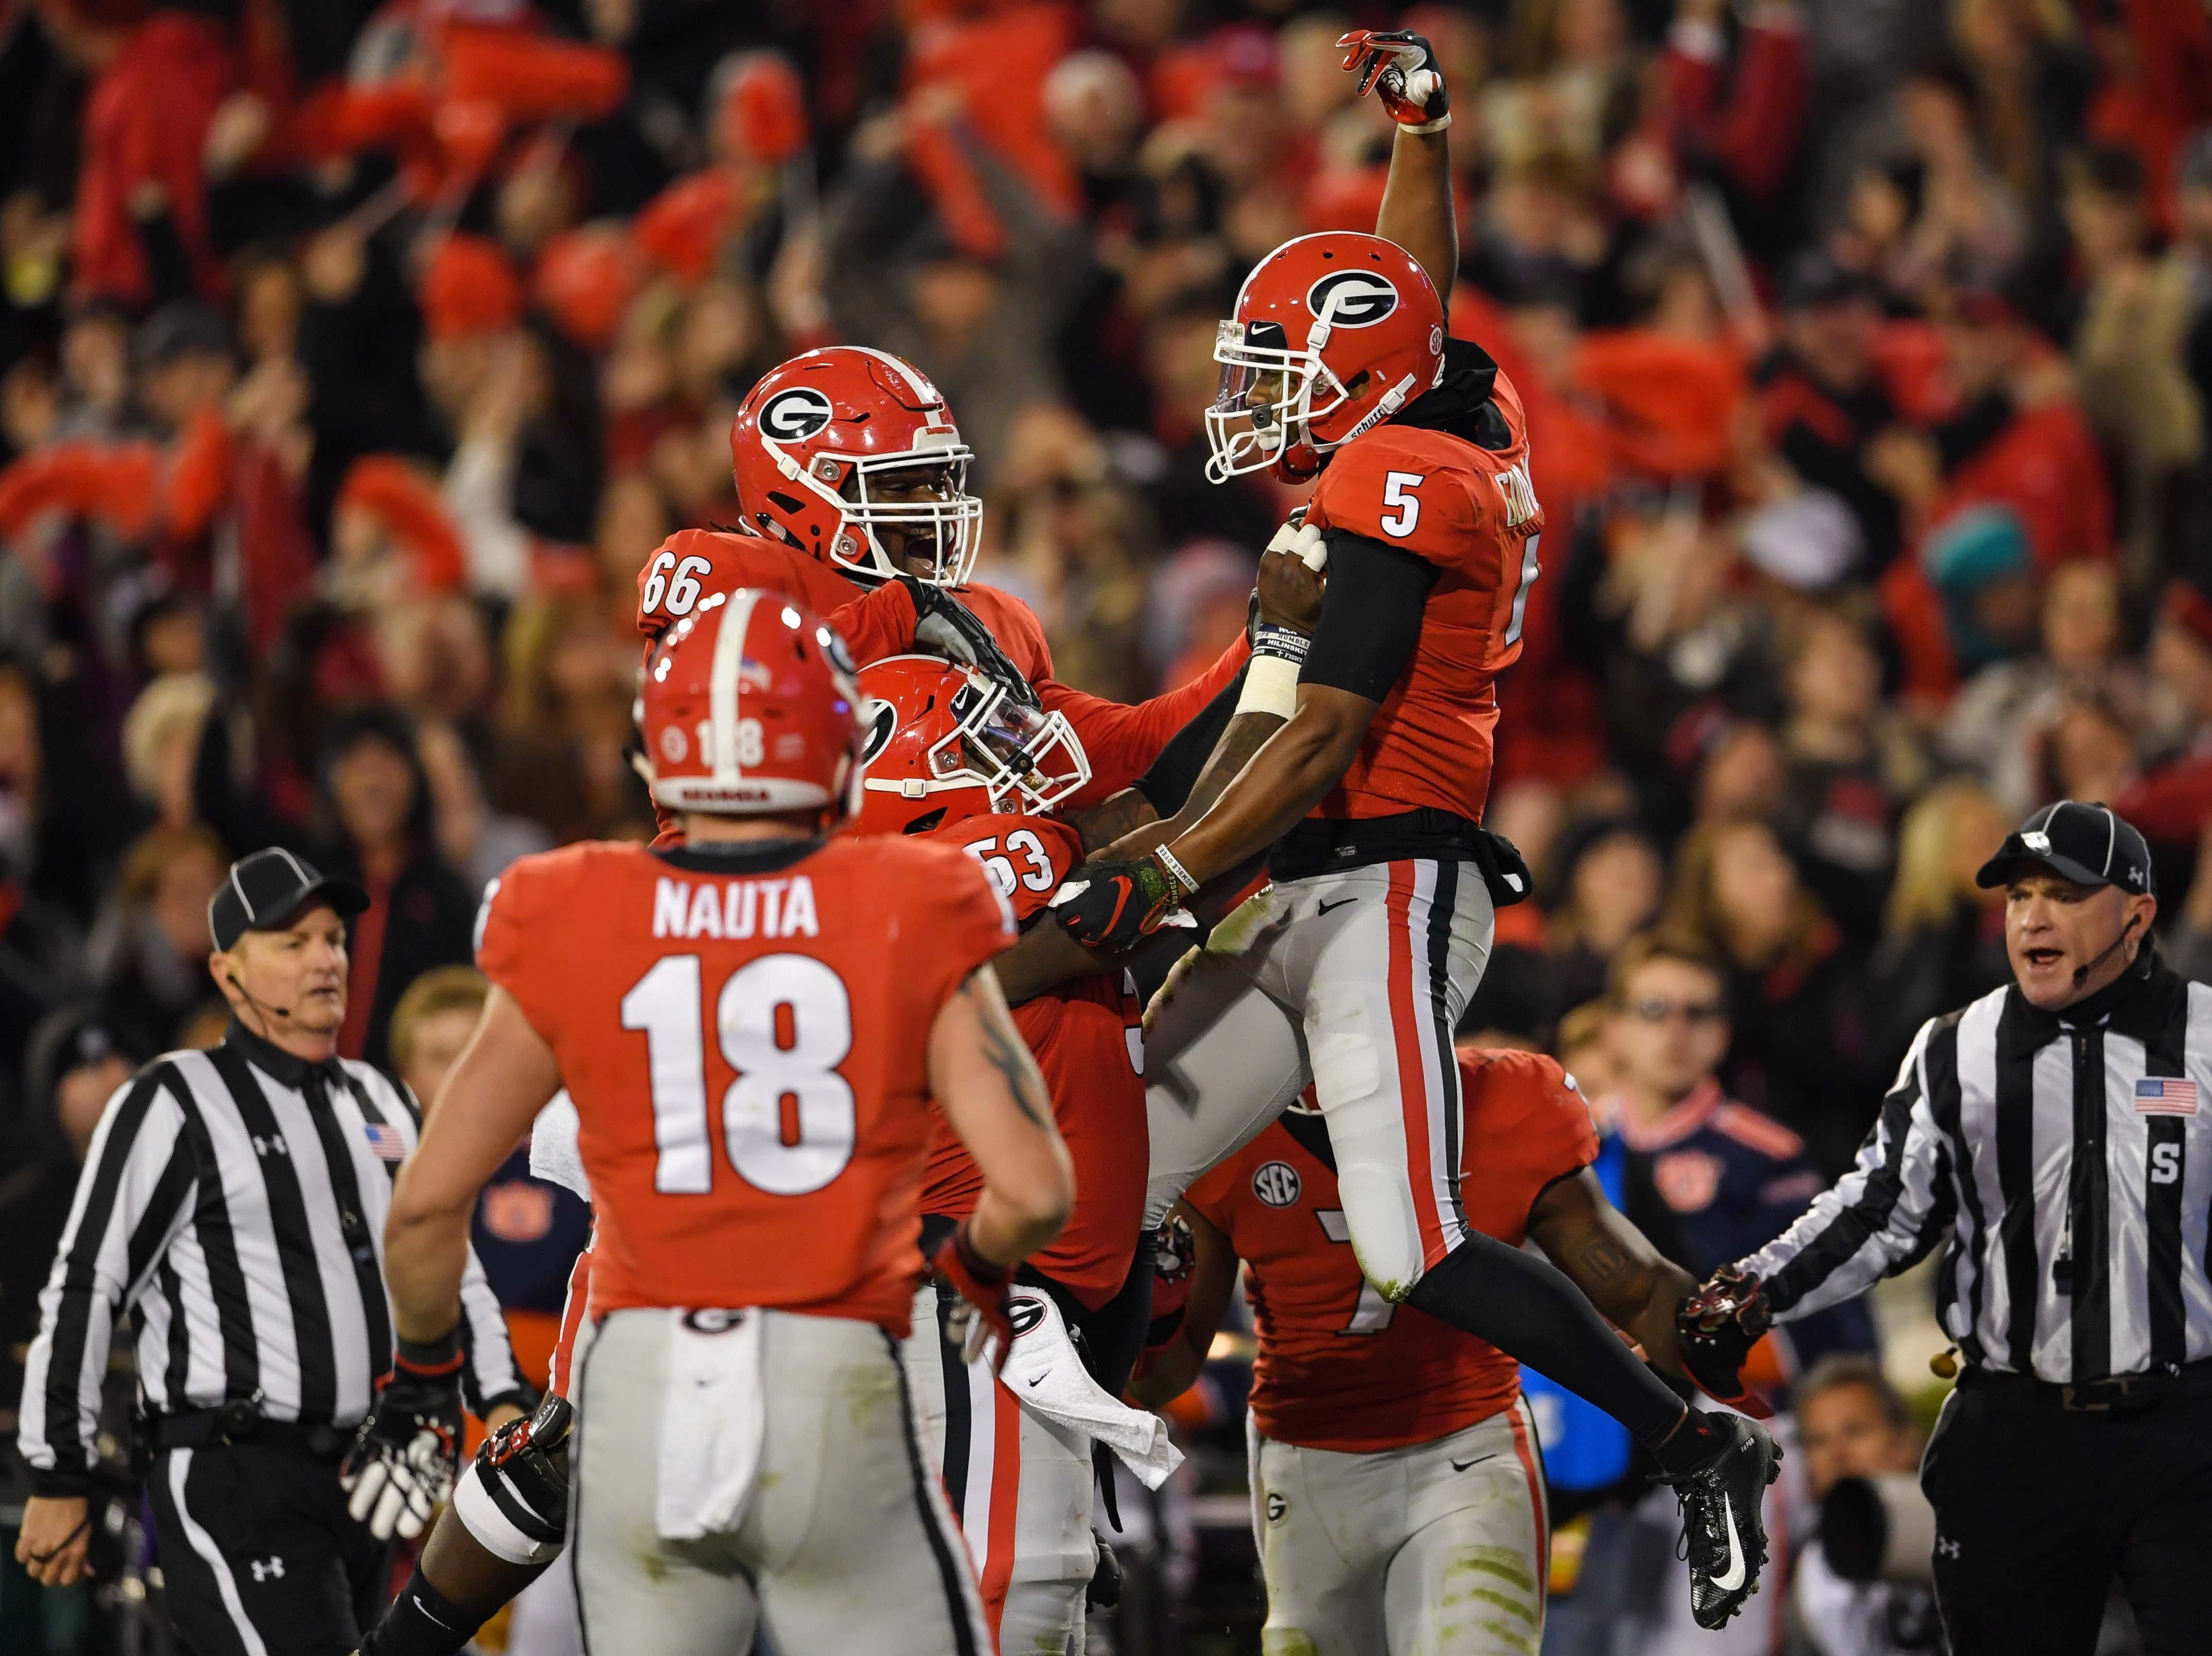 Georgia Bulldogs wide receiver Terry Godwin (5) reacts with teammates after scoring a touchdown against the Auburn Tigers during the first half at Sanford Stadium.